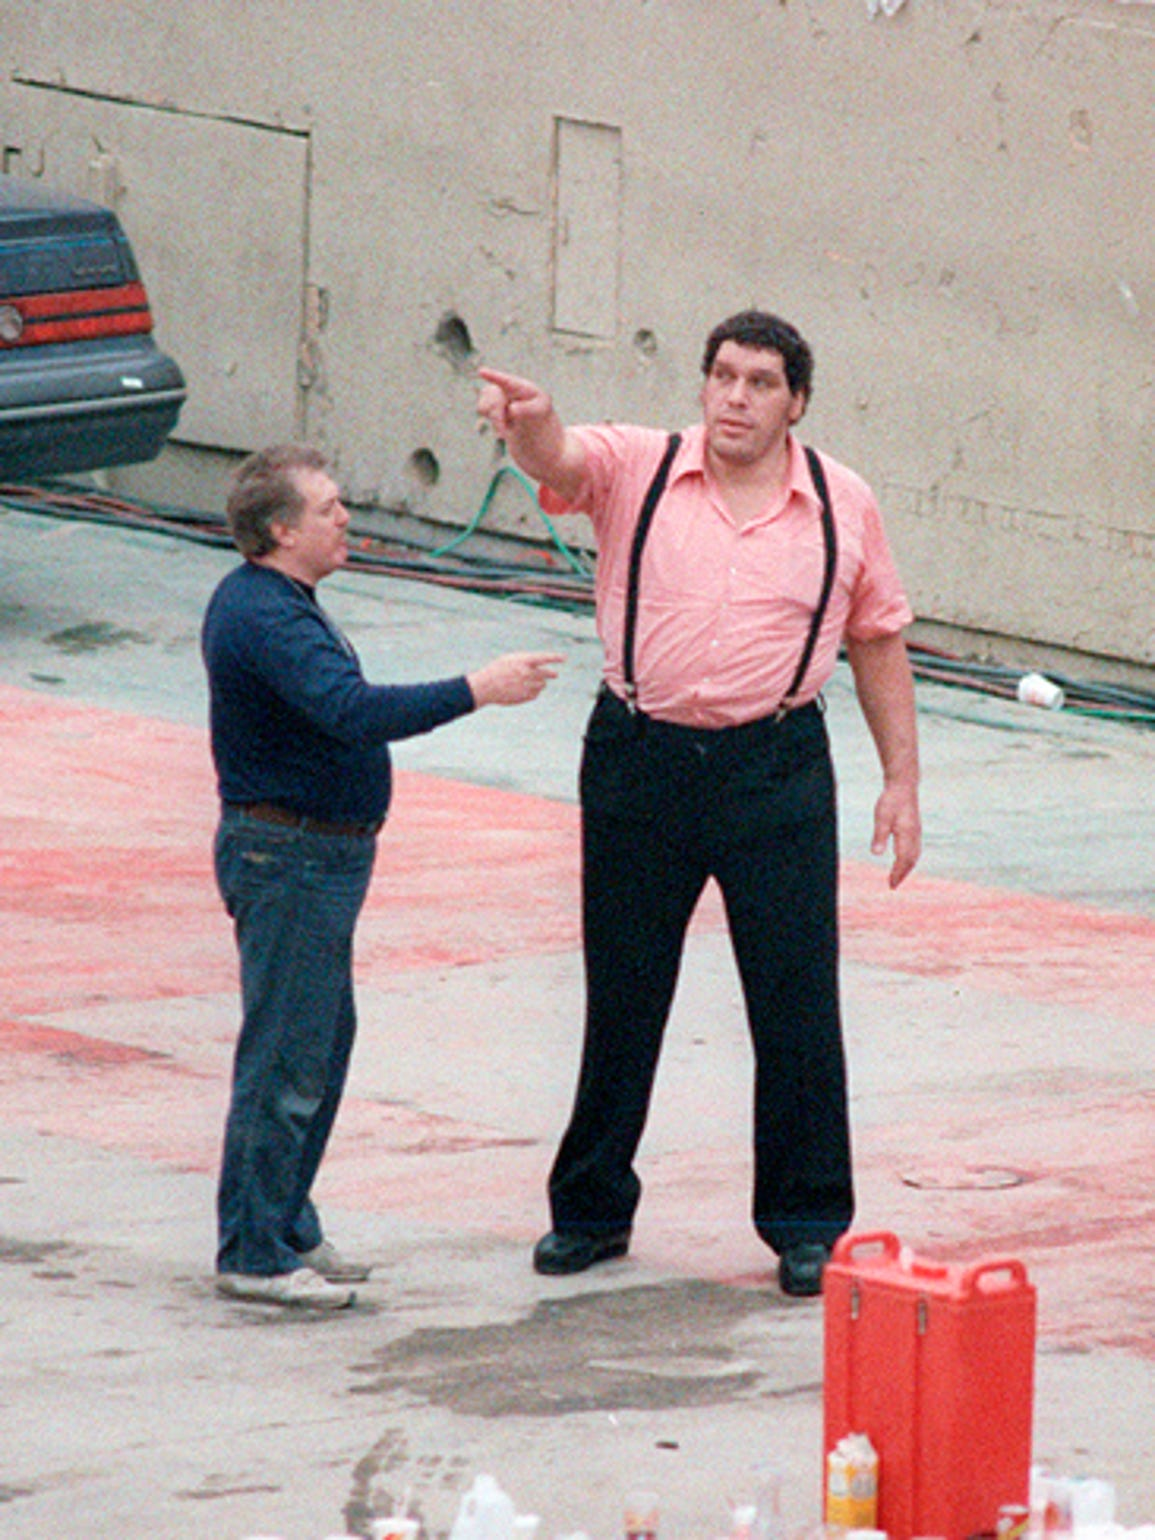 Andre the Giant checks out the Silverdome facilities